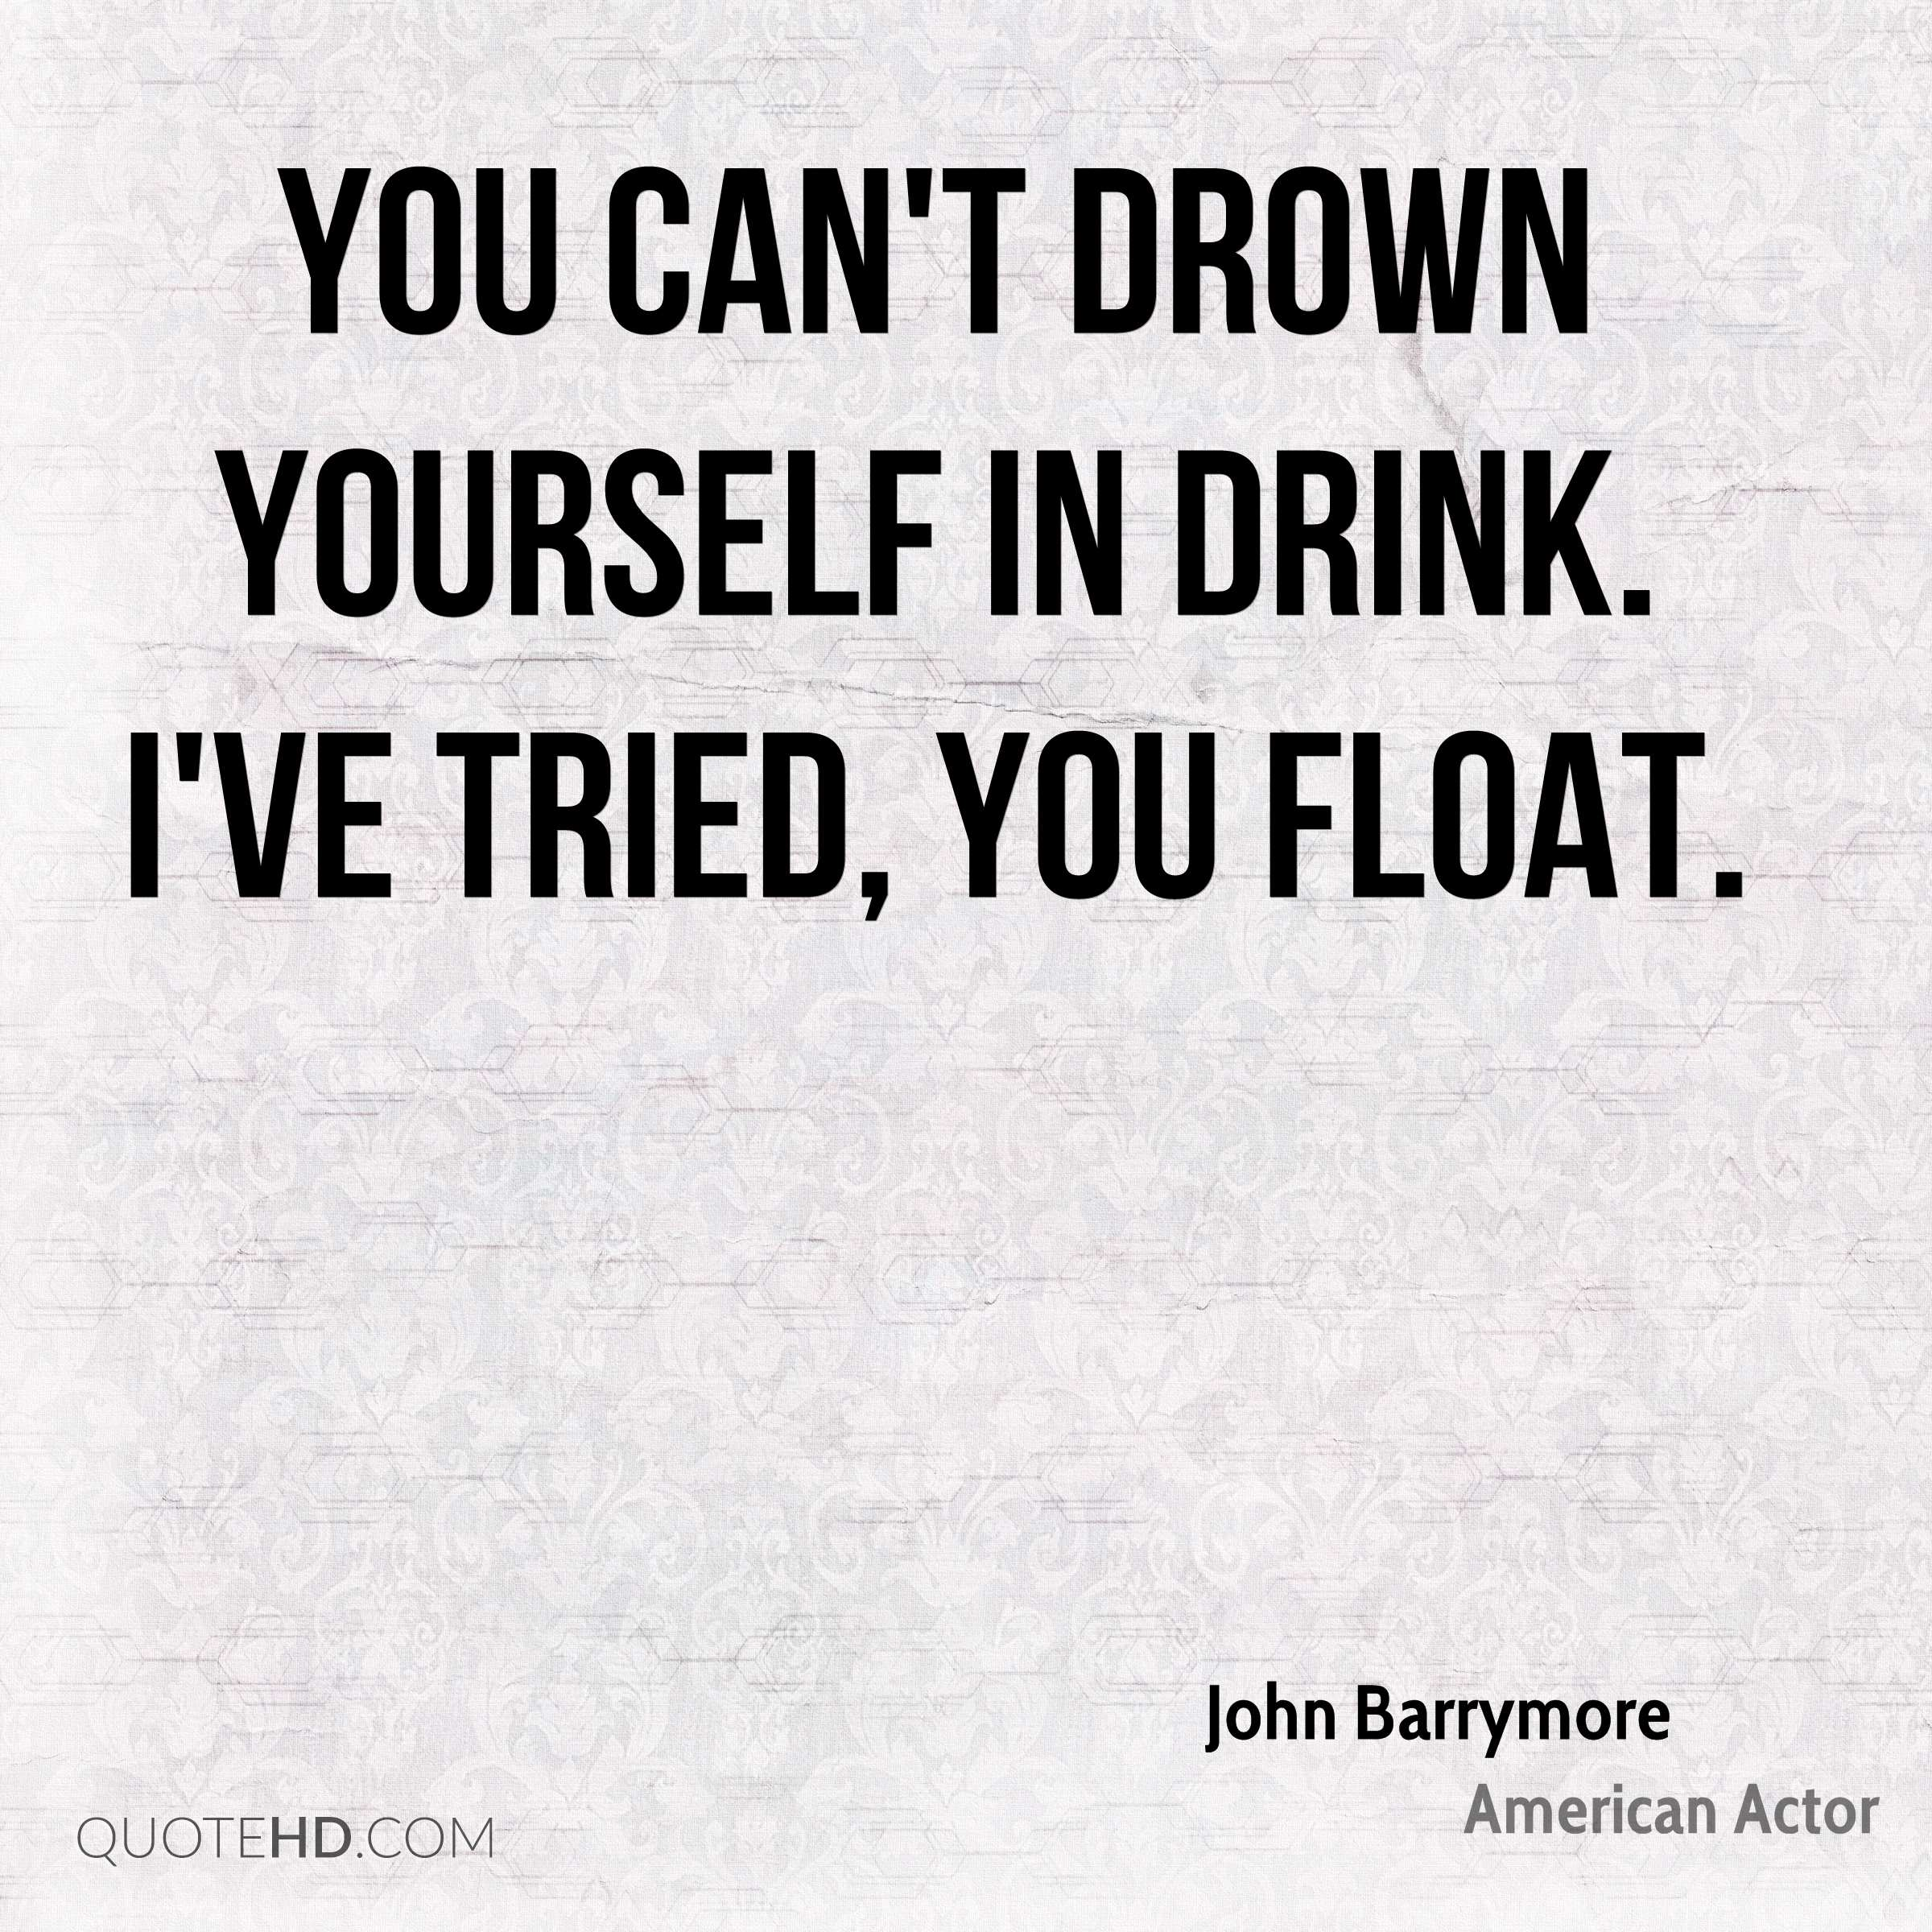 You can't drown yourself in drink. I've tried, you float.